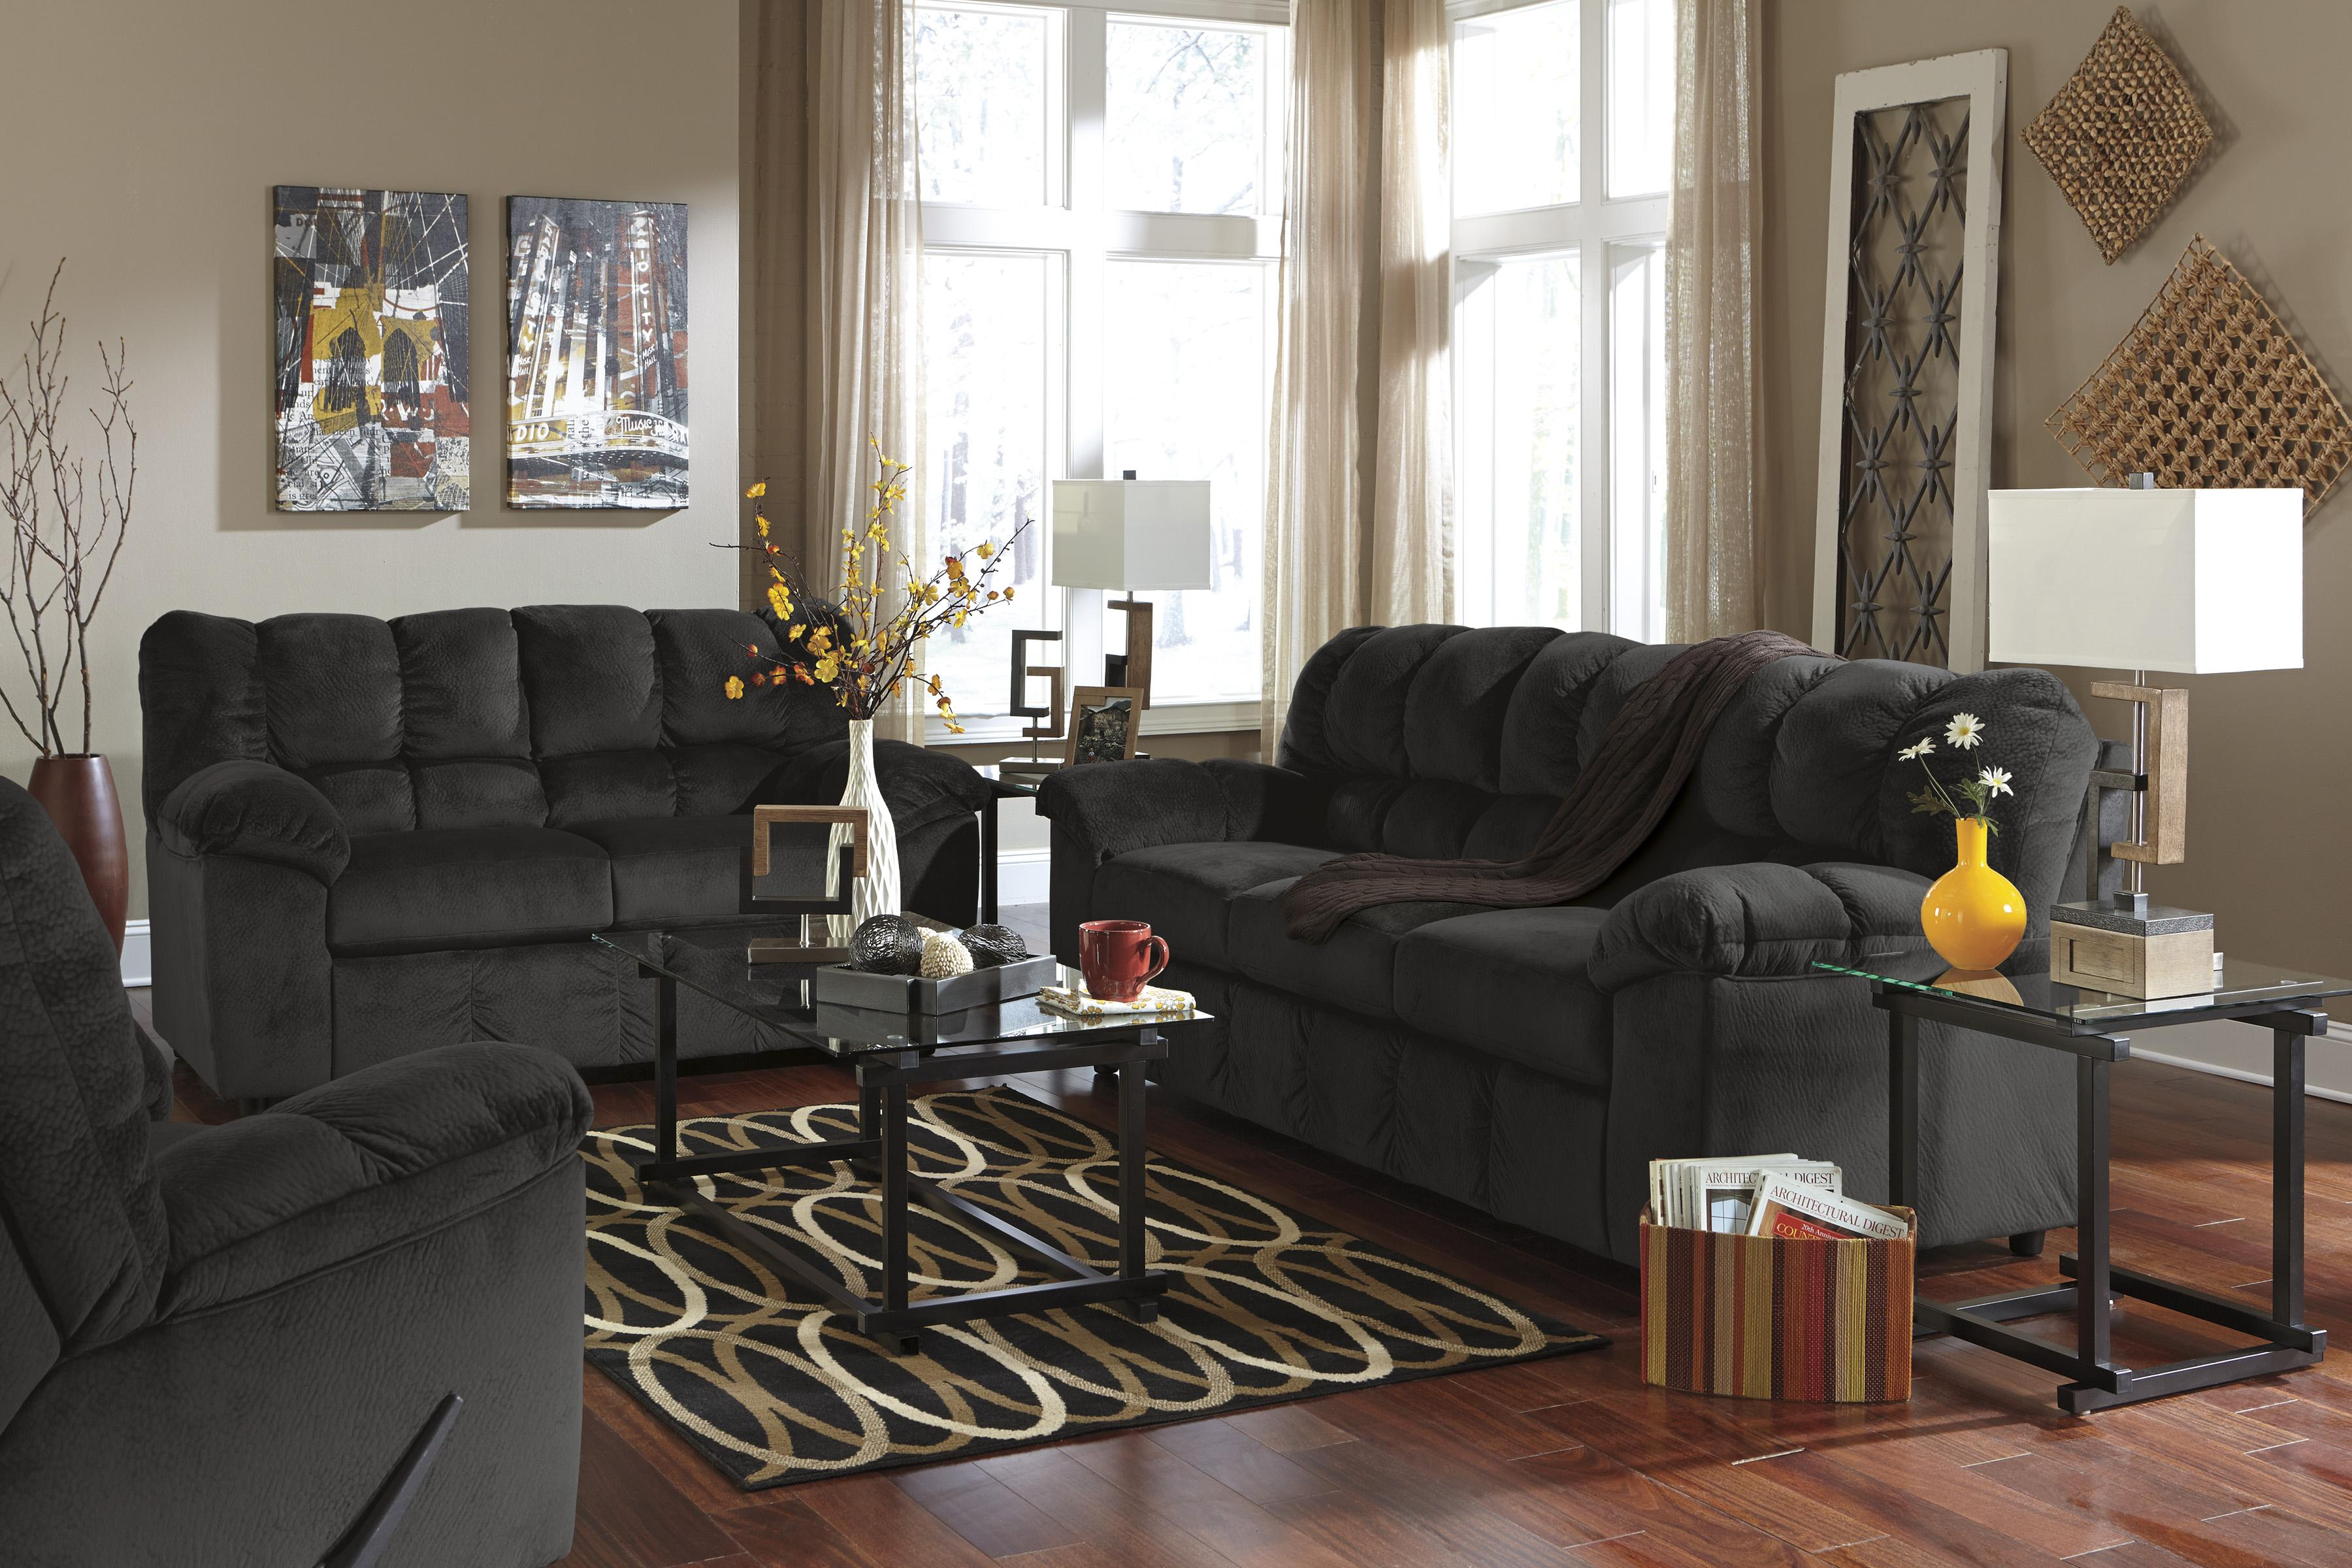 Signature Design by Ashley Julson - Ebony Stationary Living Room Group - Item Number: 26600 Living Room Group 2